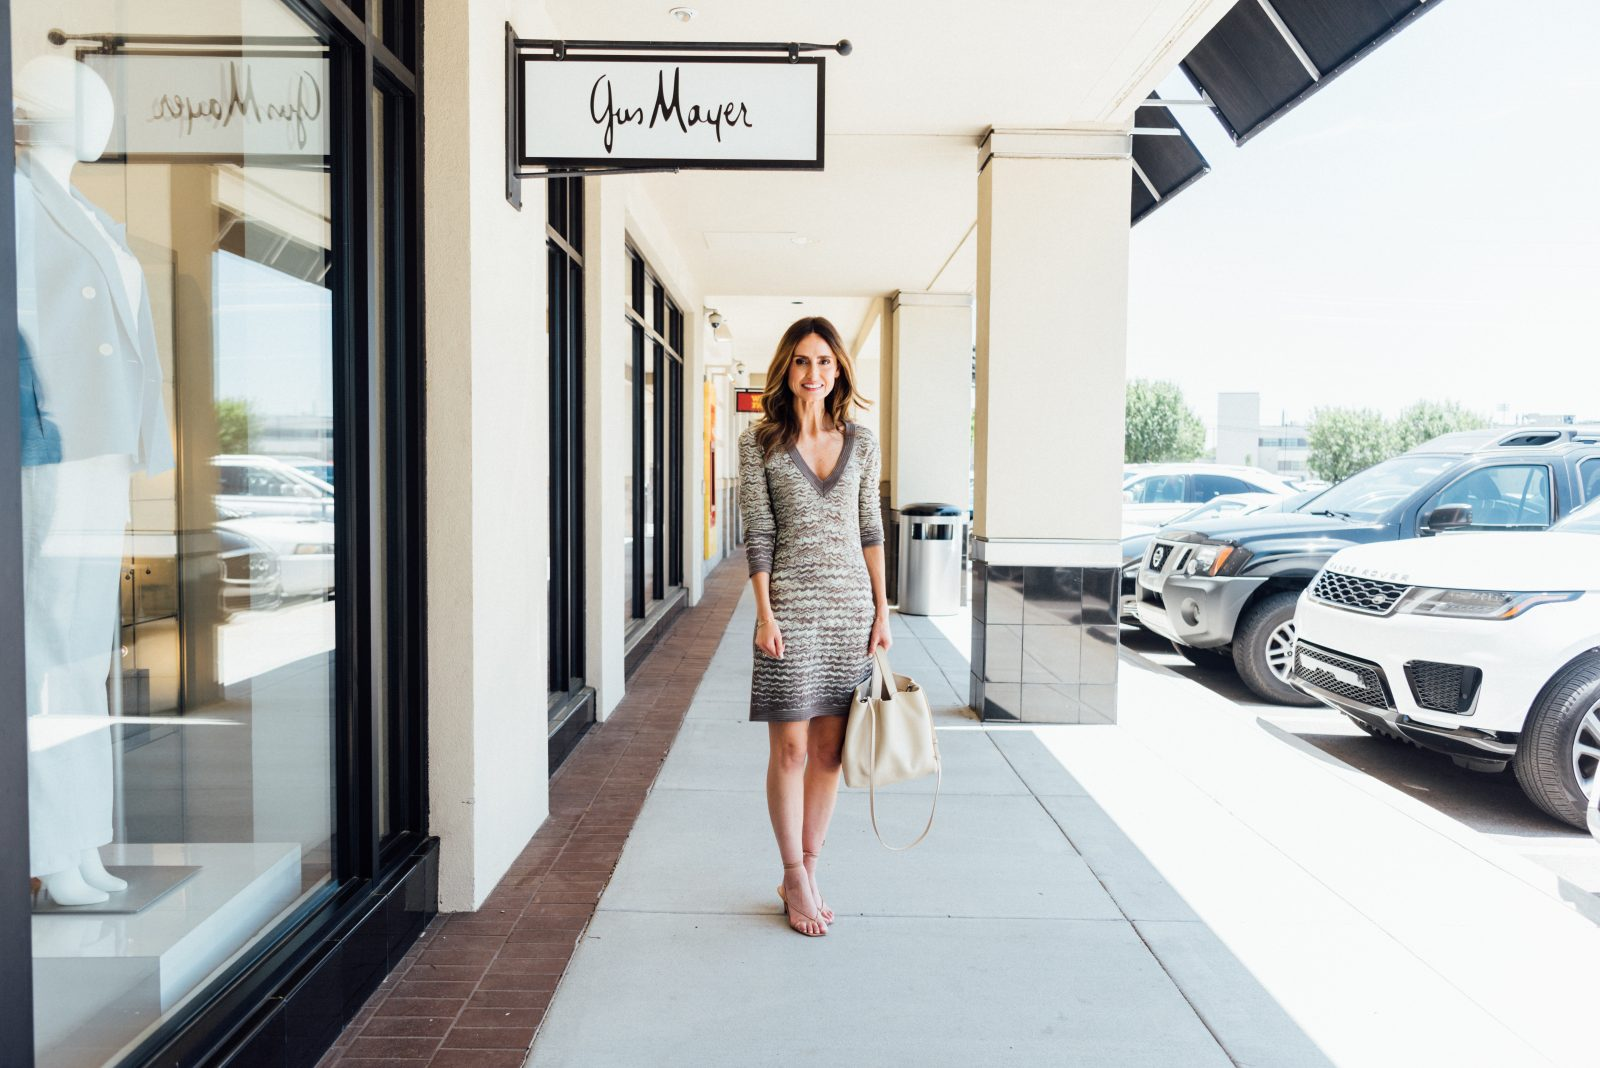 Mary Kathryn Hudson visits the Gus Mayer vintage showcase